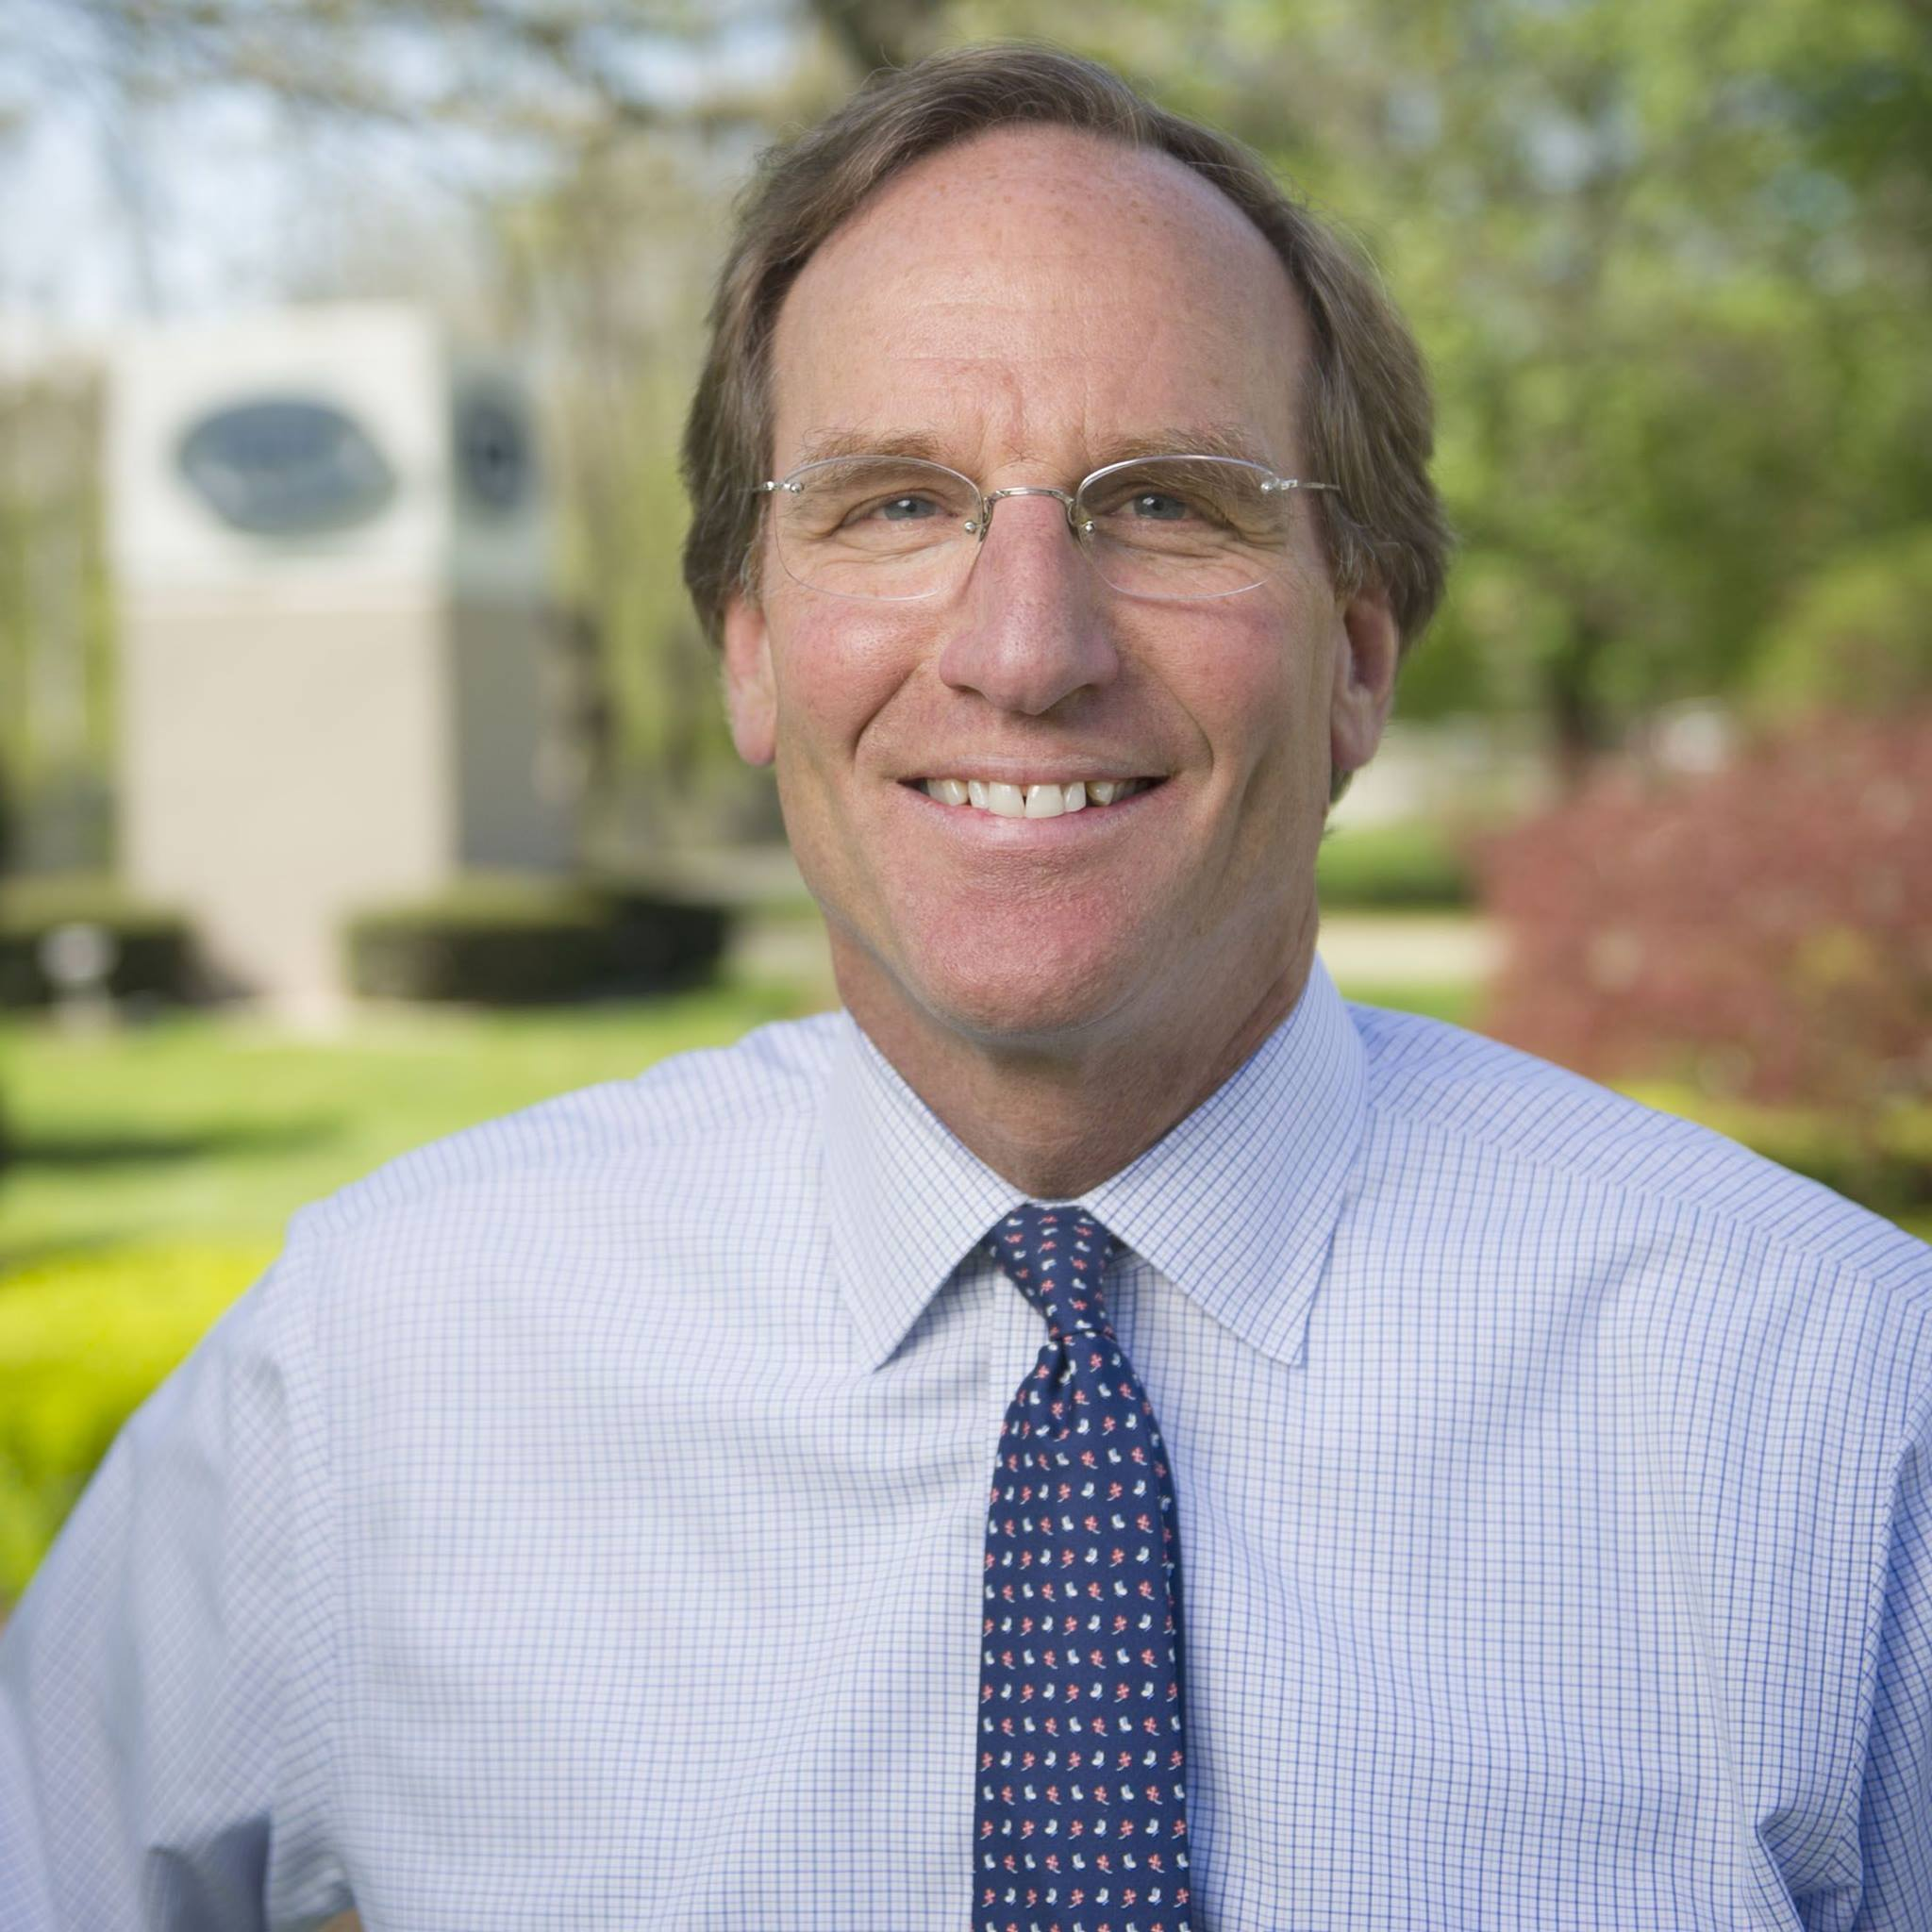 Peter Maglathlin – Chief Executive Officer, MBI, Inc.